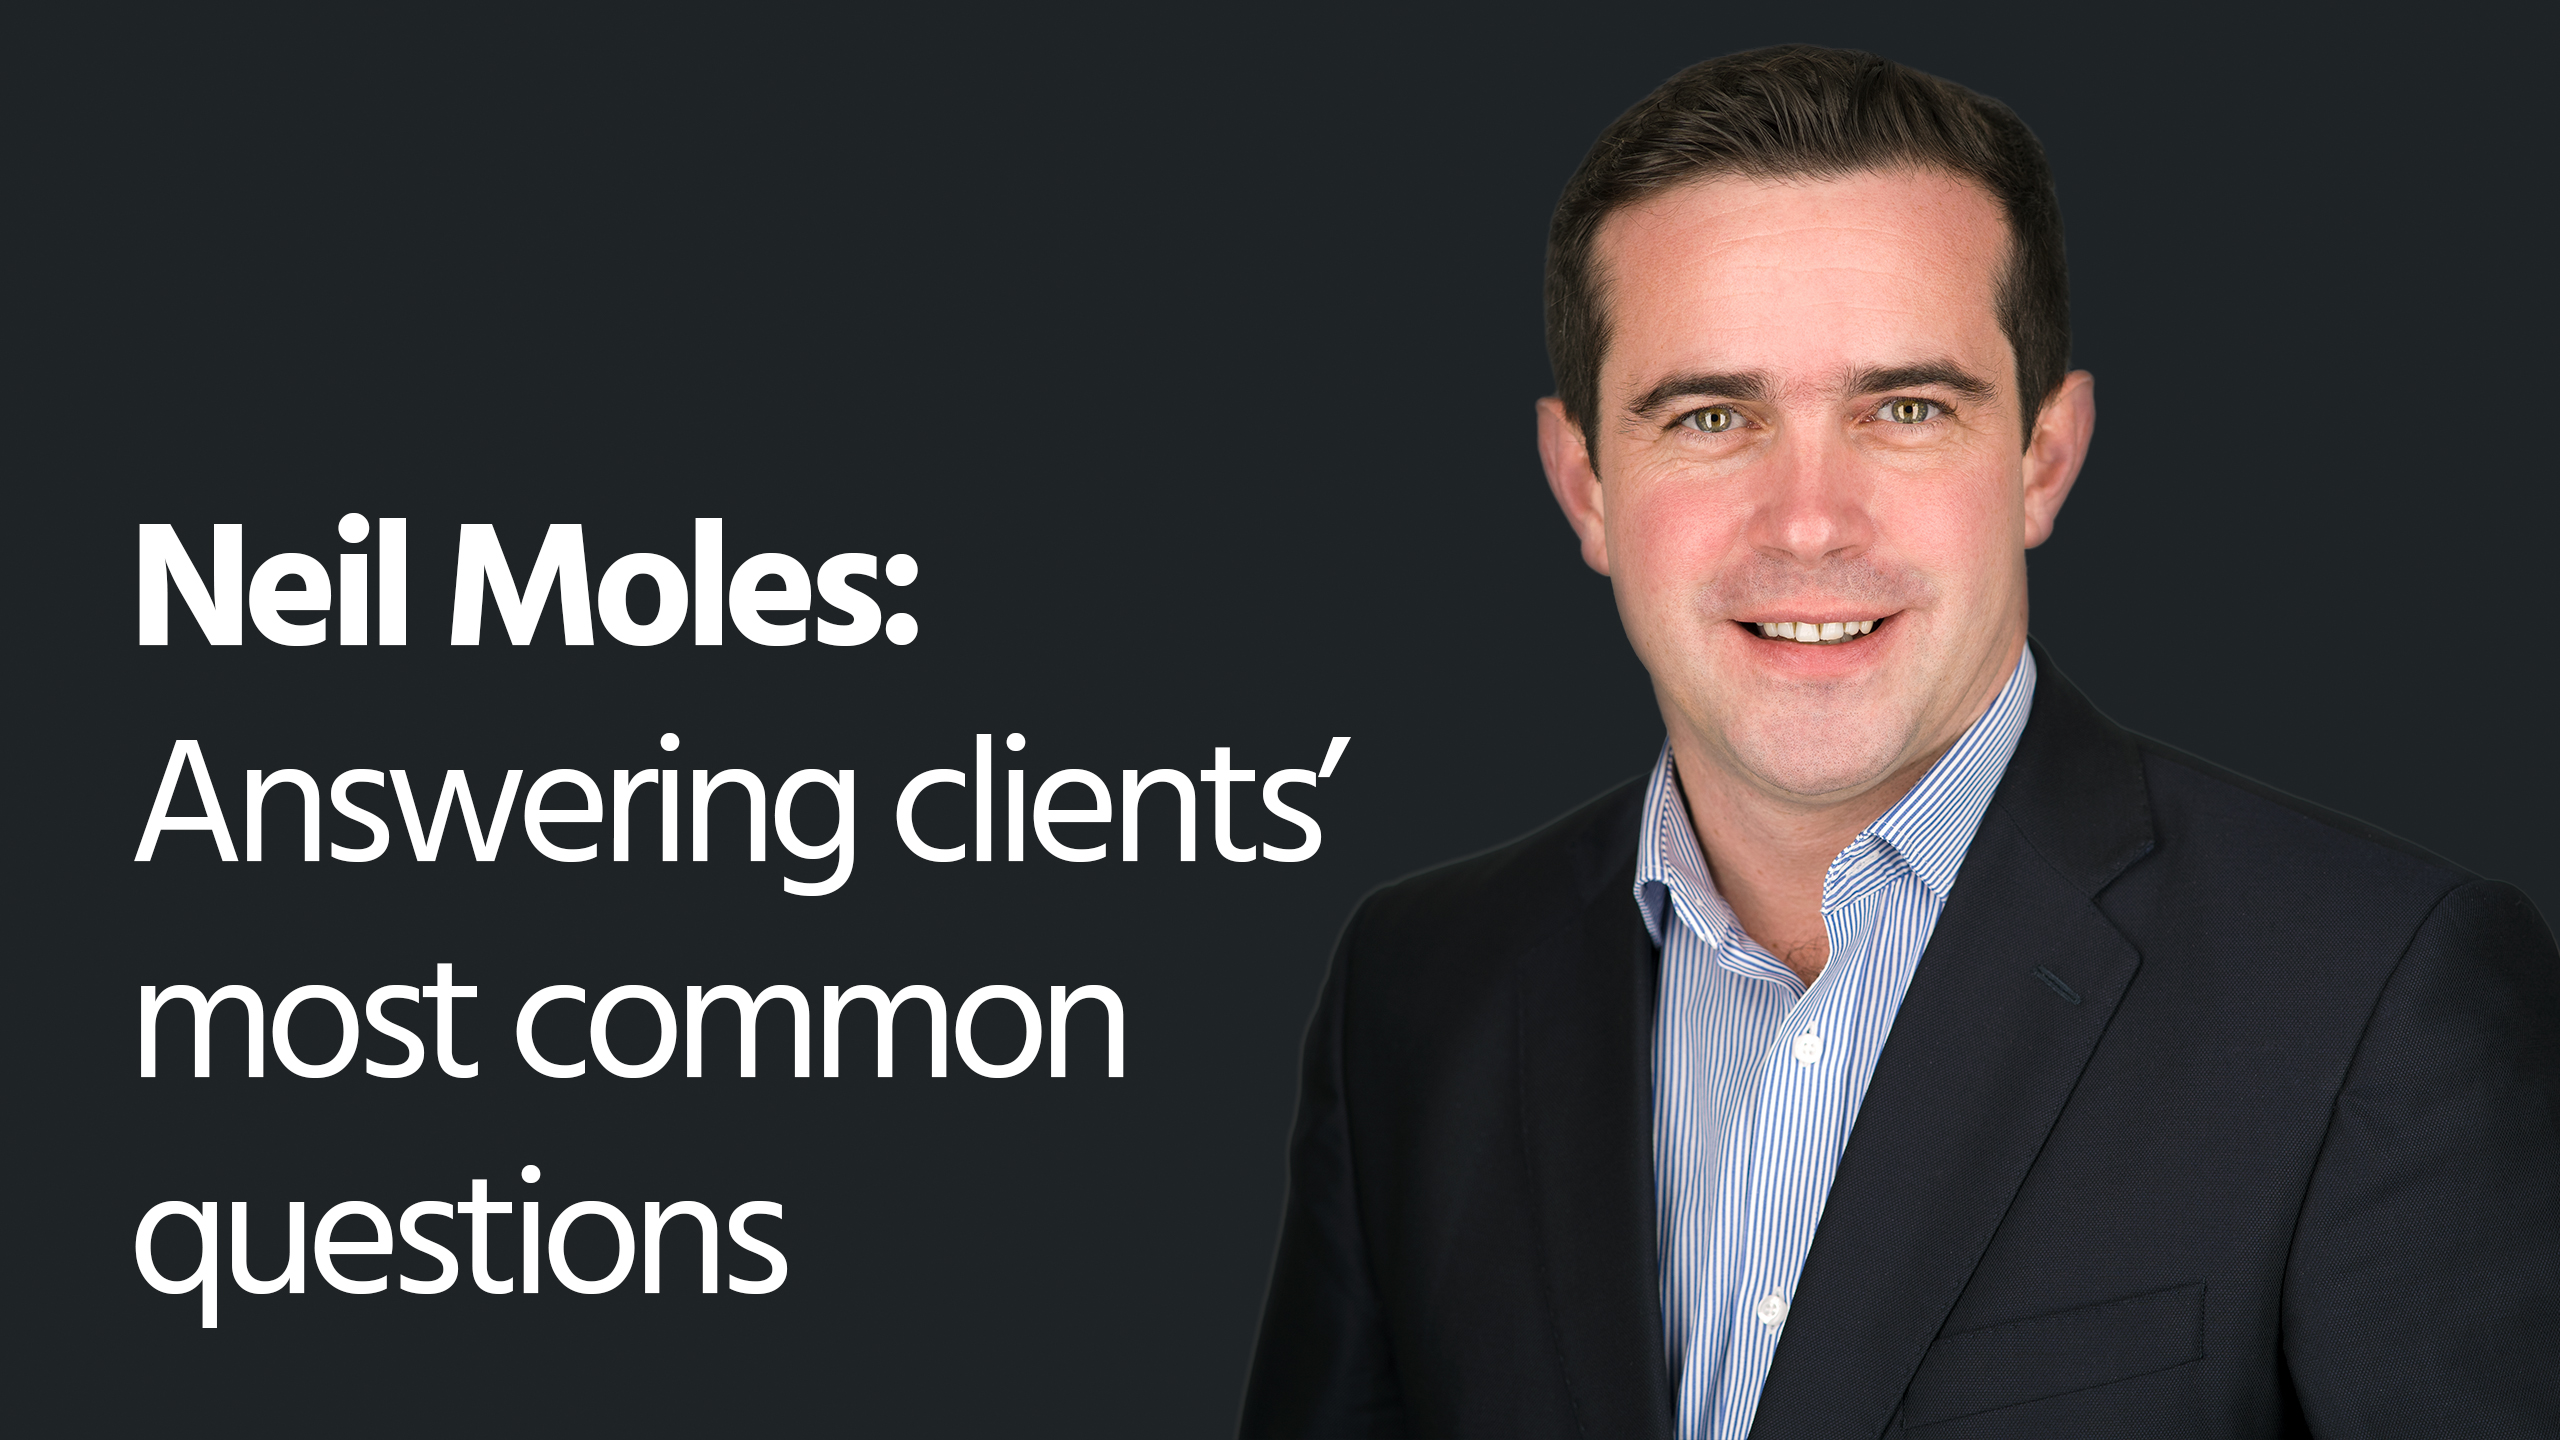 Neil Moles: Answering clients' most common questions